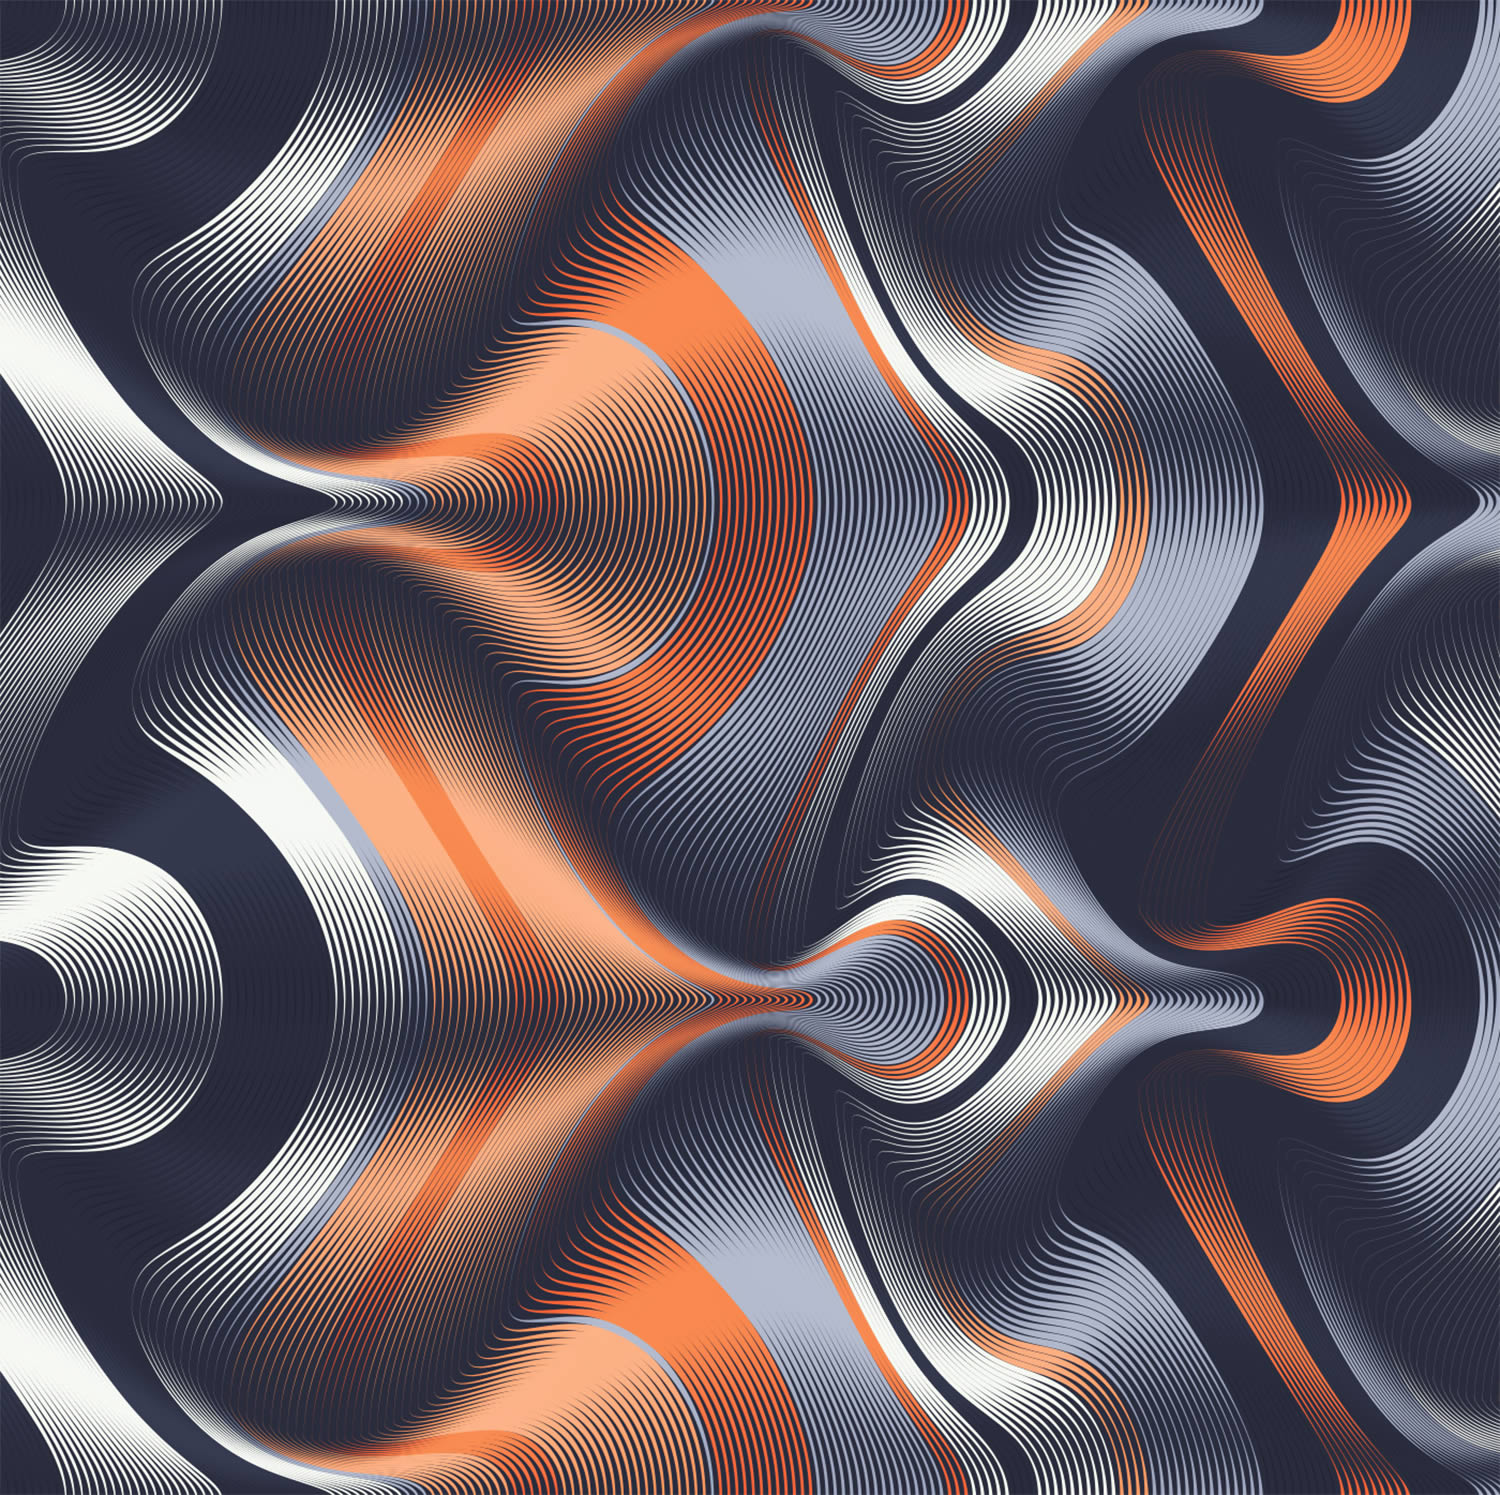 orange and grey waves, illustration